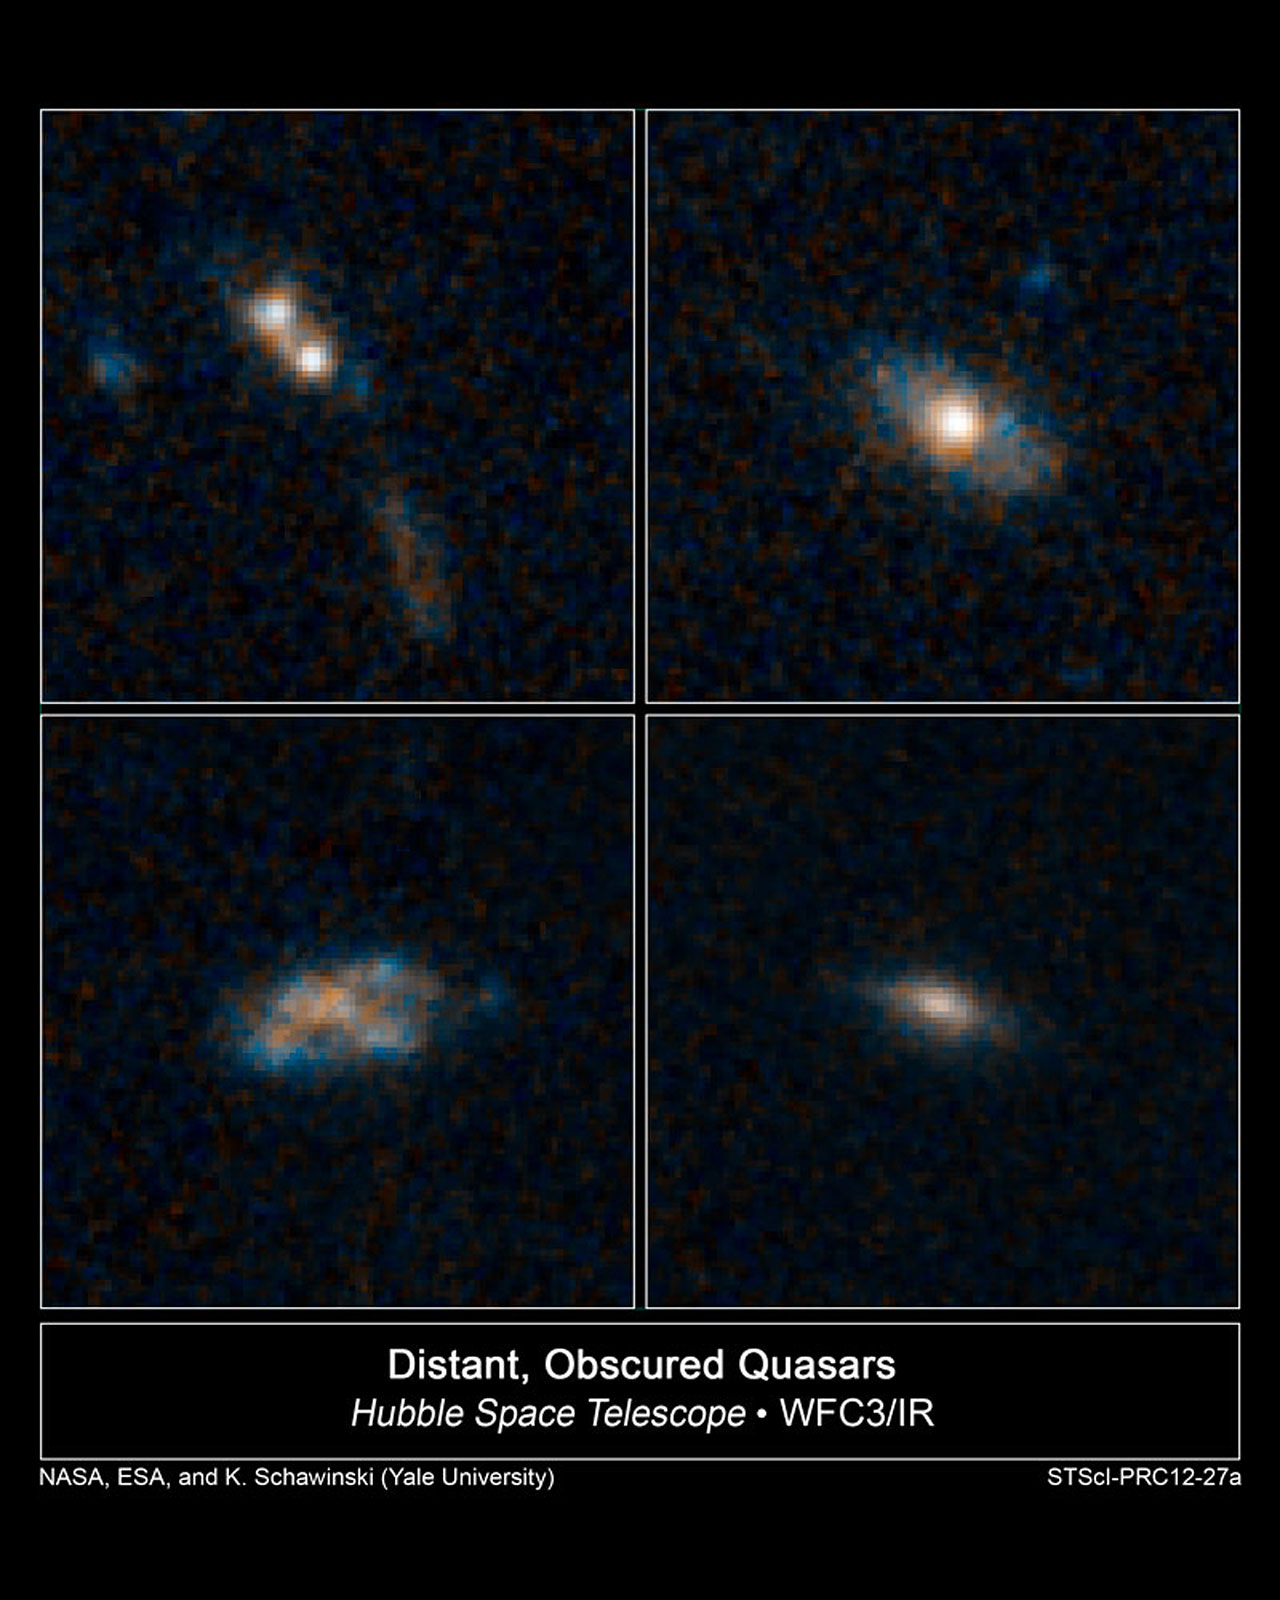 The homes of quasars